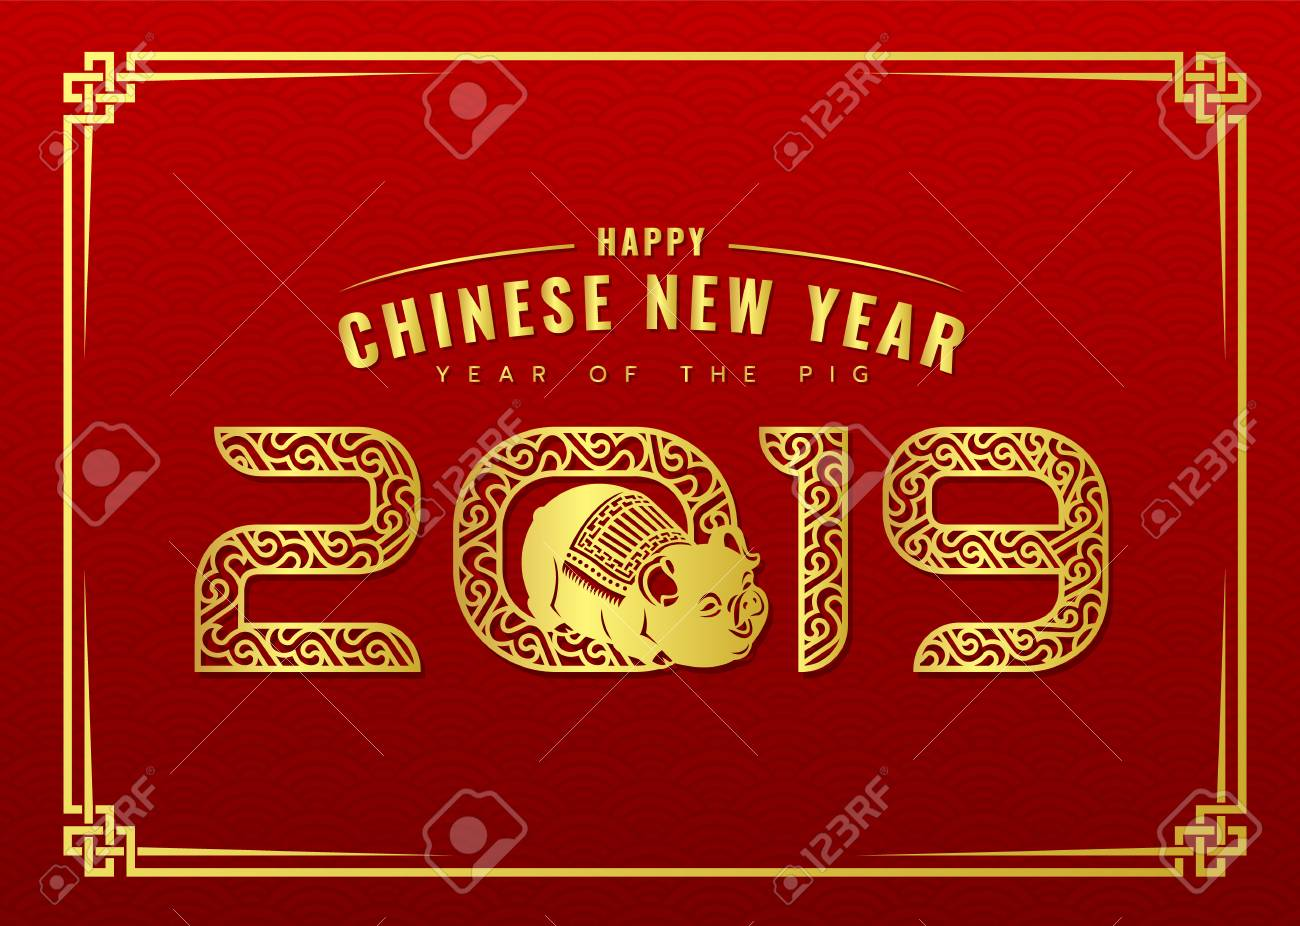 Happy Chinese New Year Card With Gold Abstract Line Border 2019